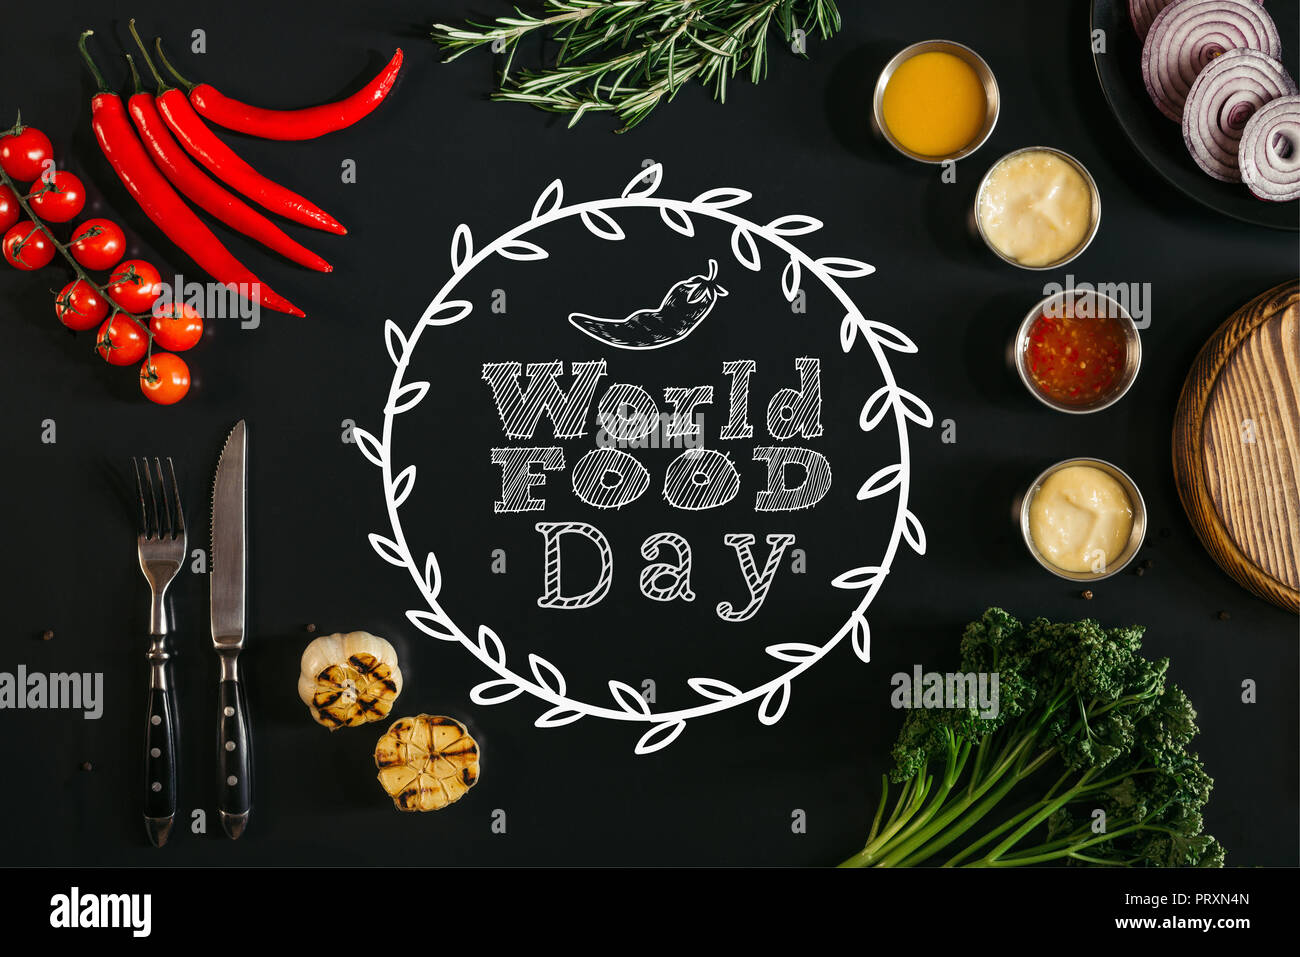 top view of various sauces, grilled garlic, fork with knife and fresh vegetables with herbs on black background with 'world food day' lettering - Stock Image